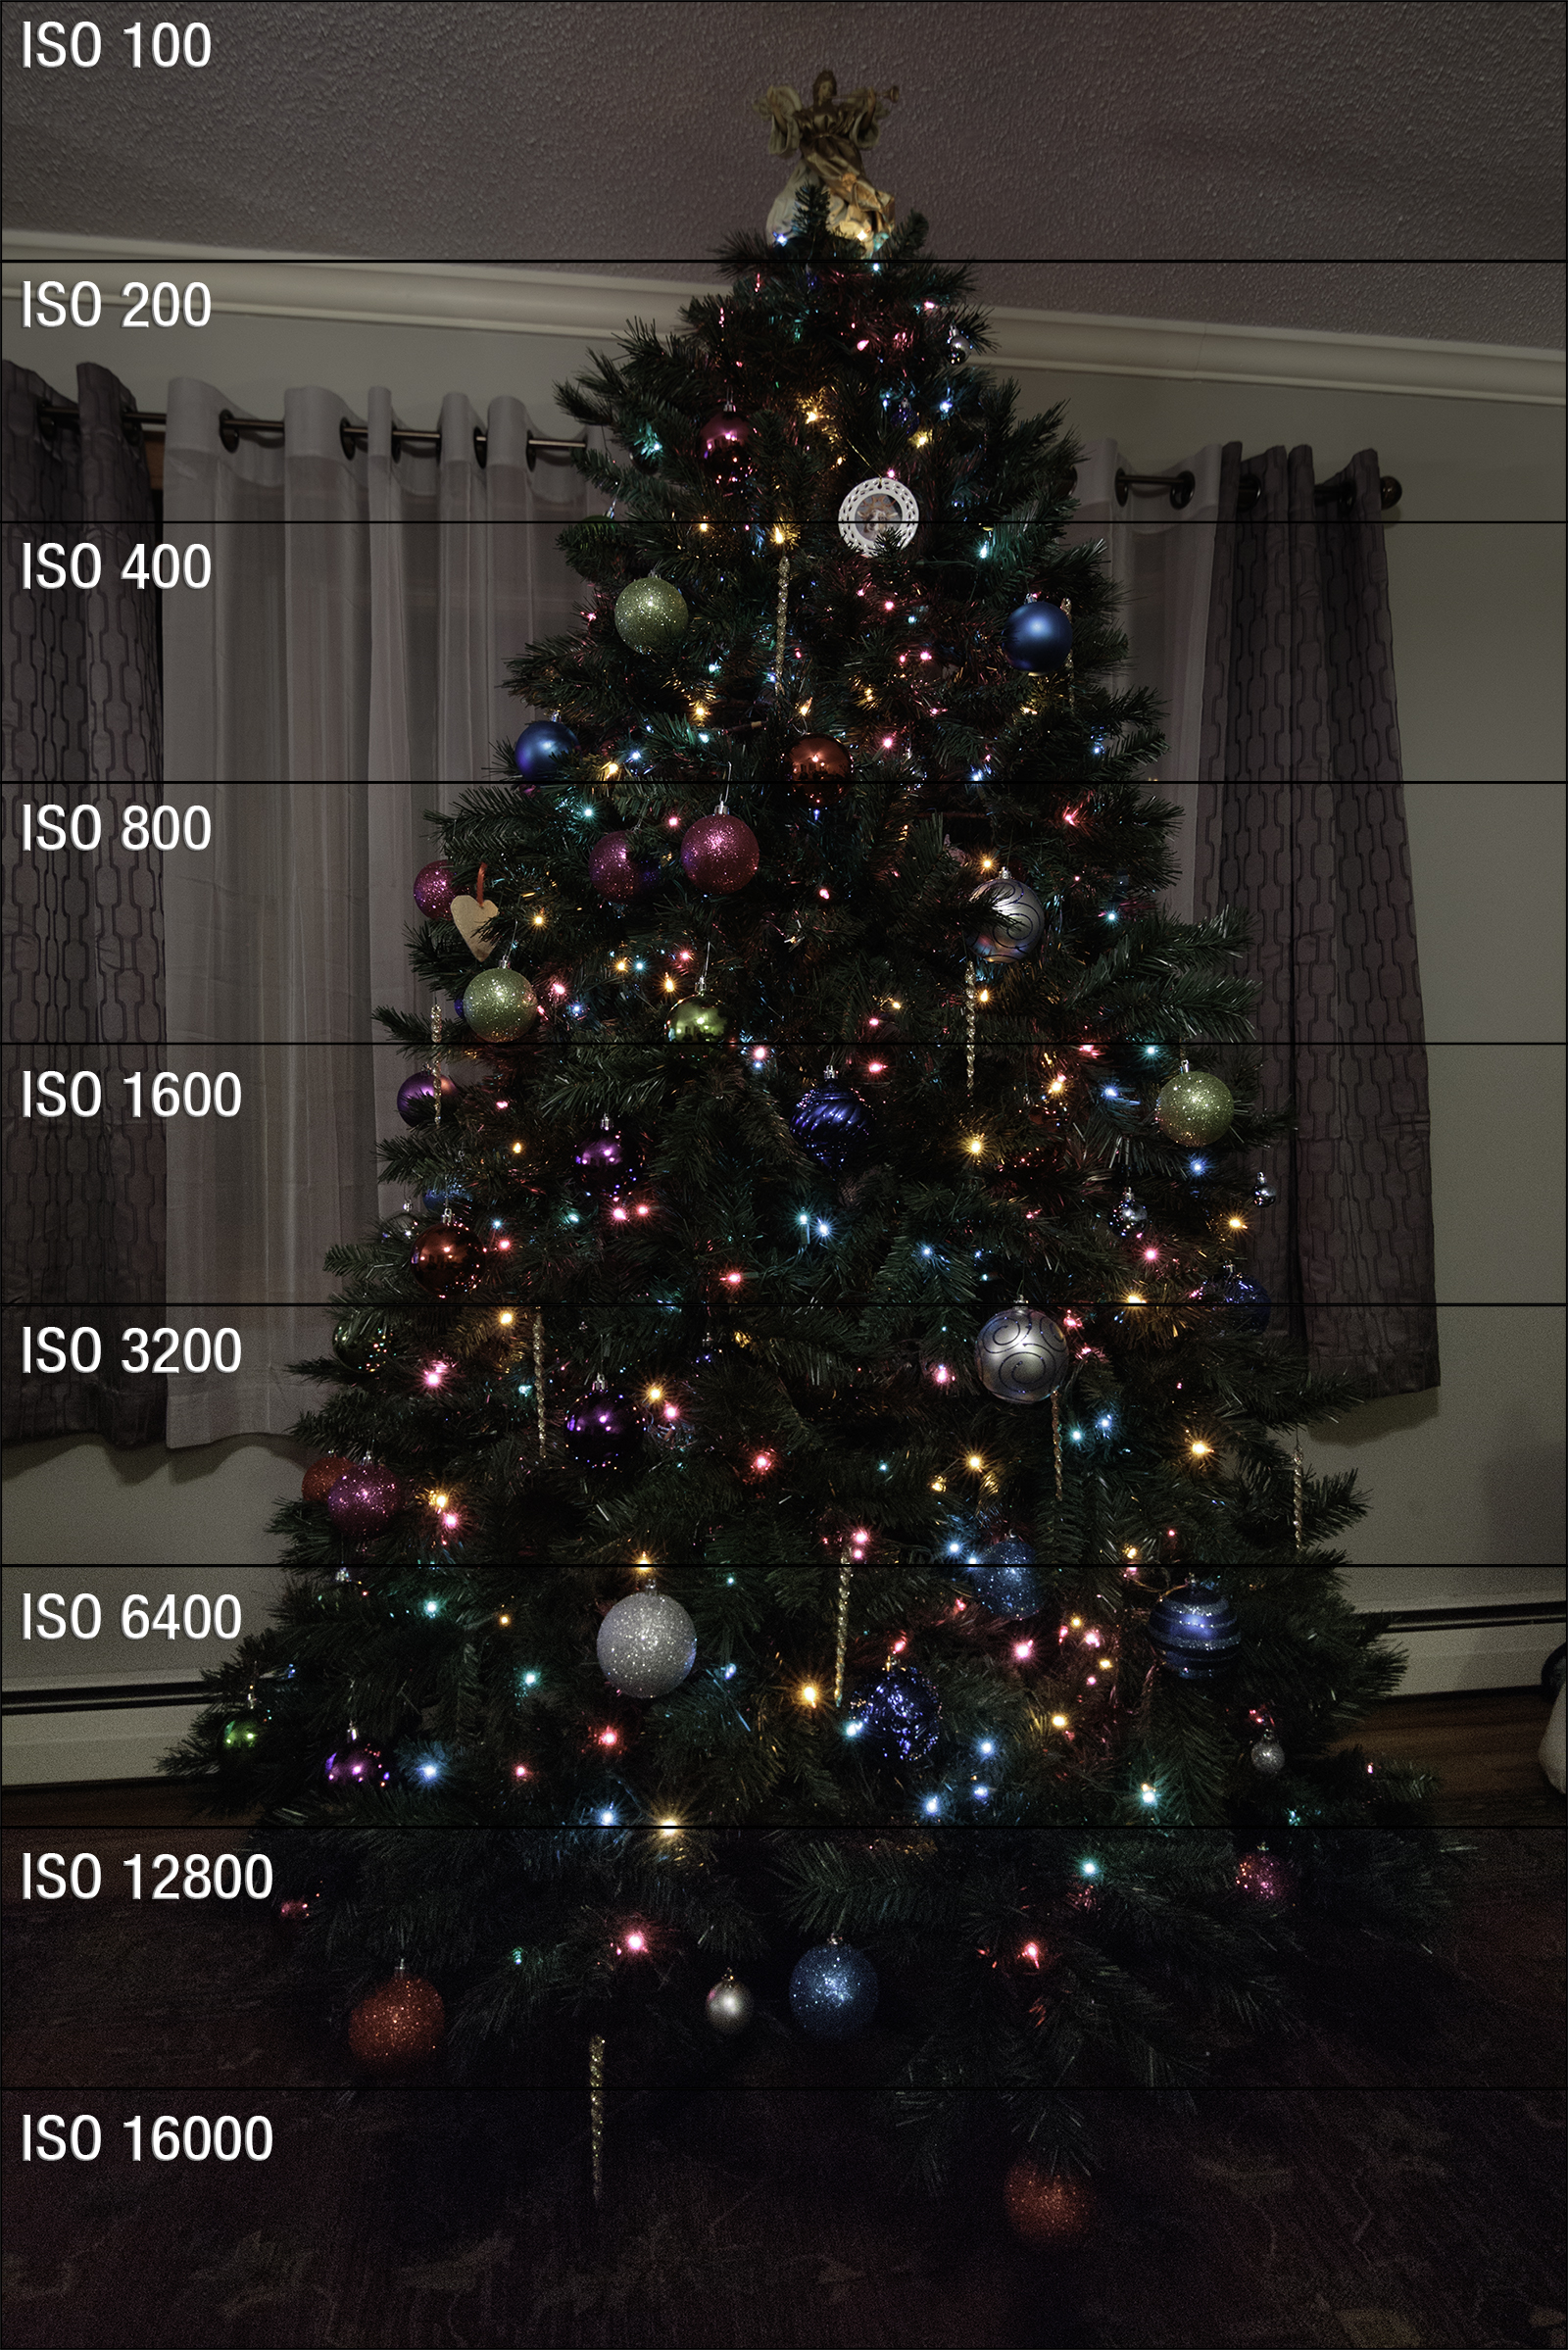 7D Mark II Christmas Tree ISO Test